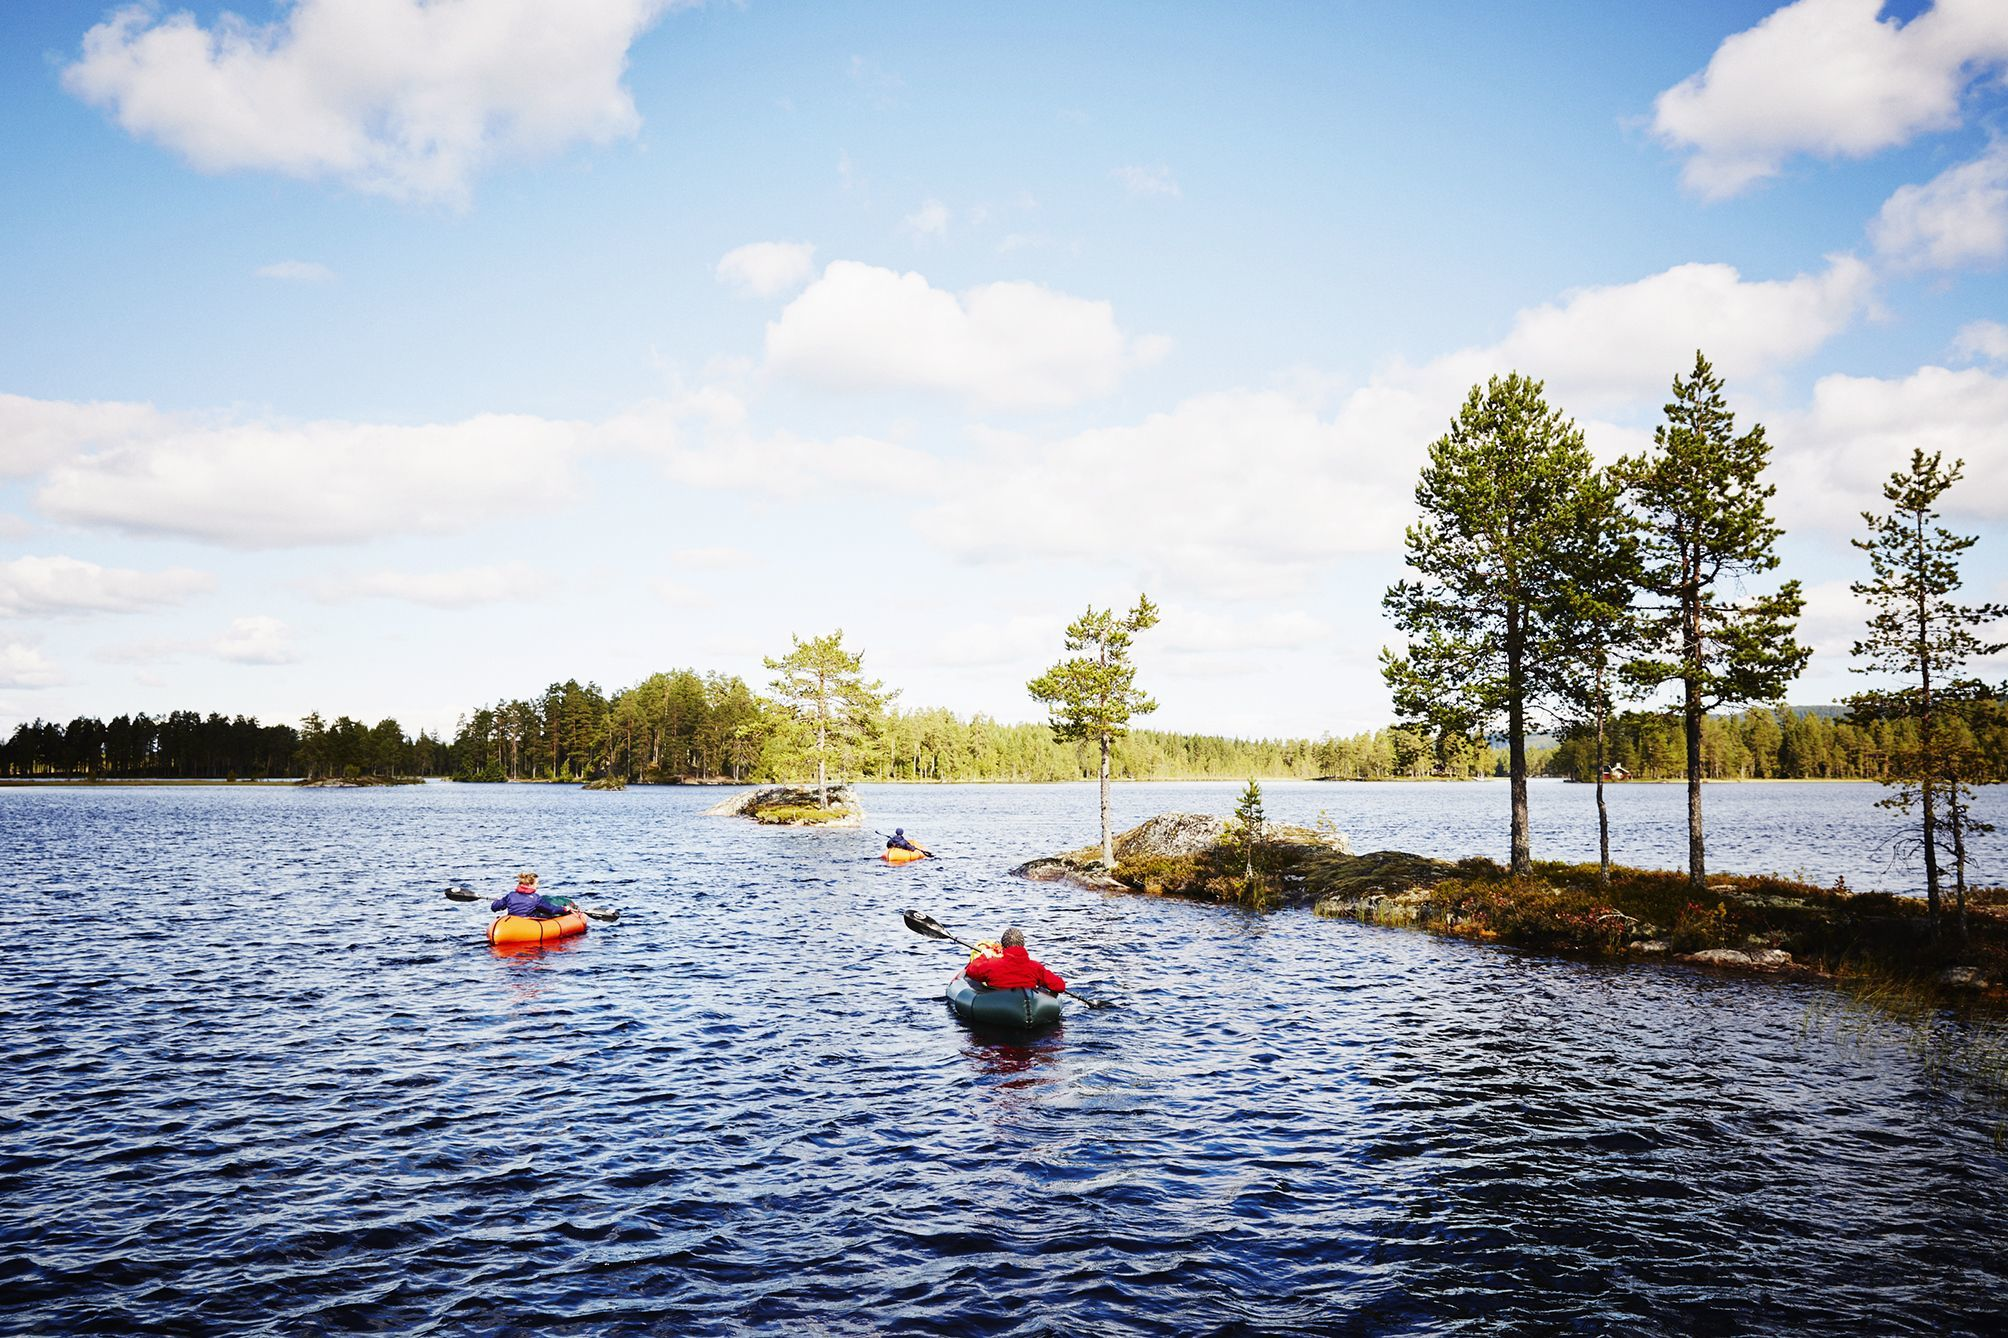 Group of packrafters navigating around islands in a lake district near Oslo, Norway